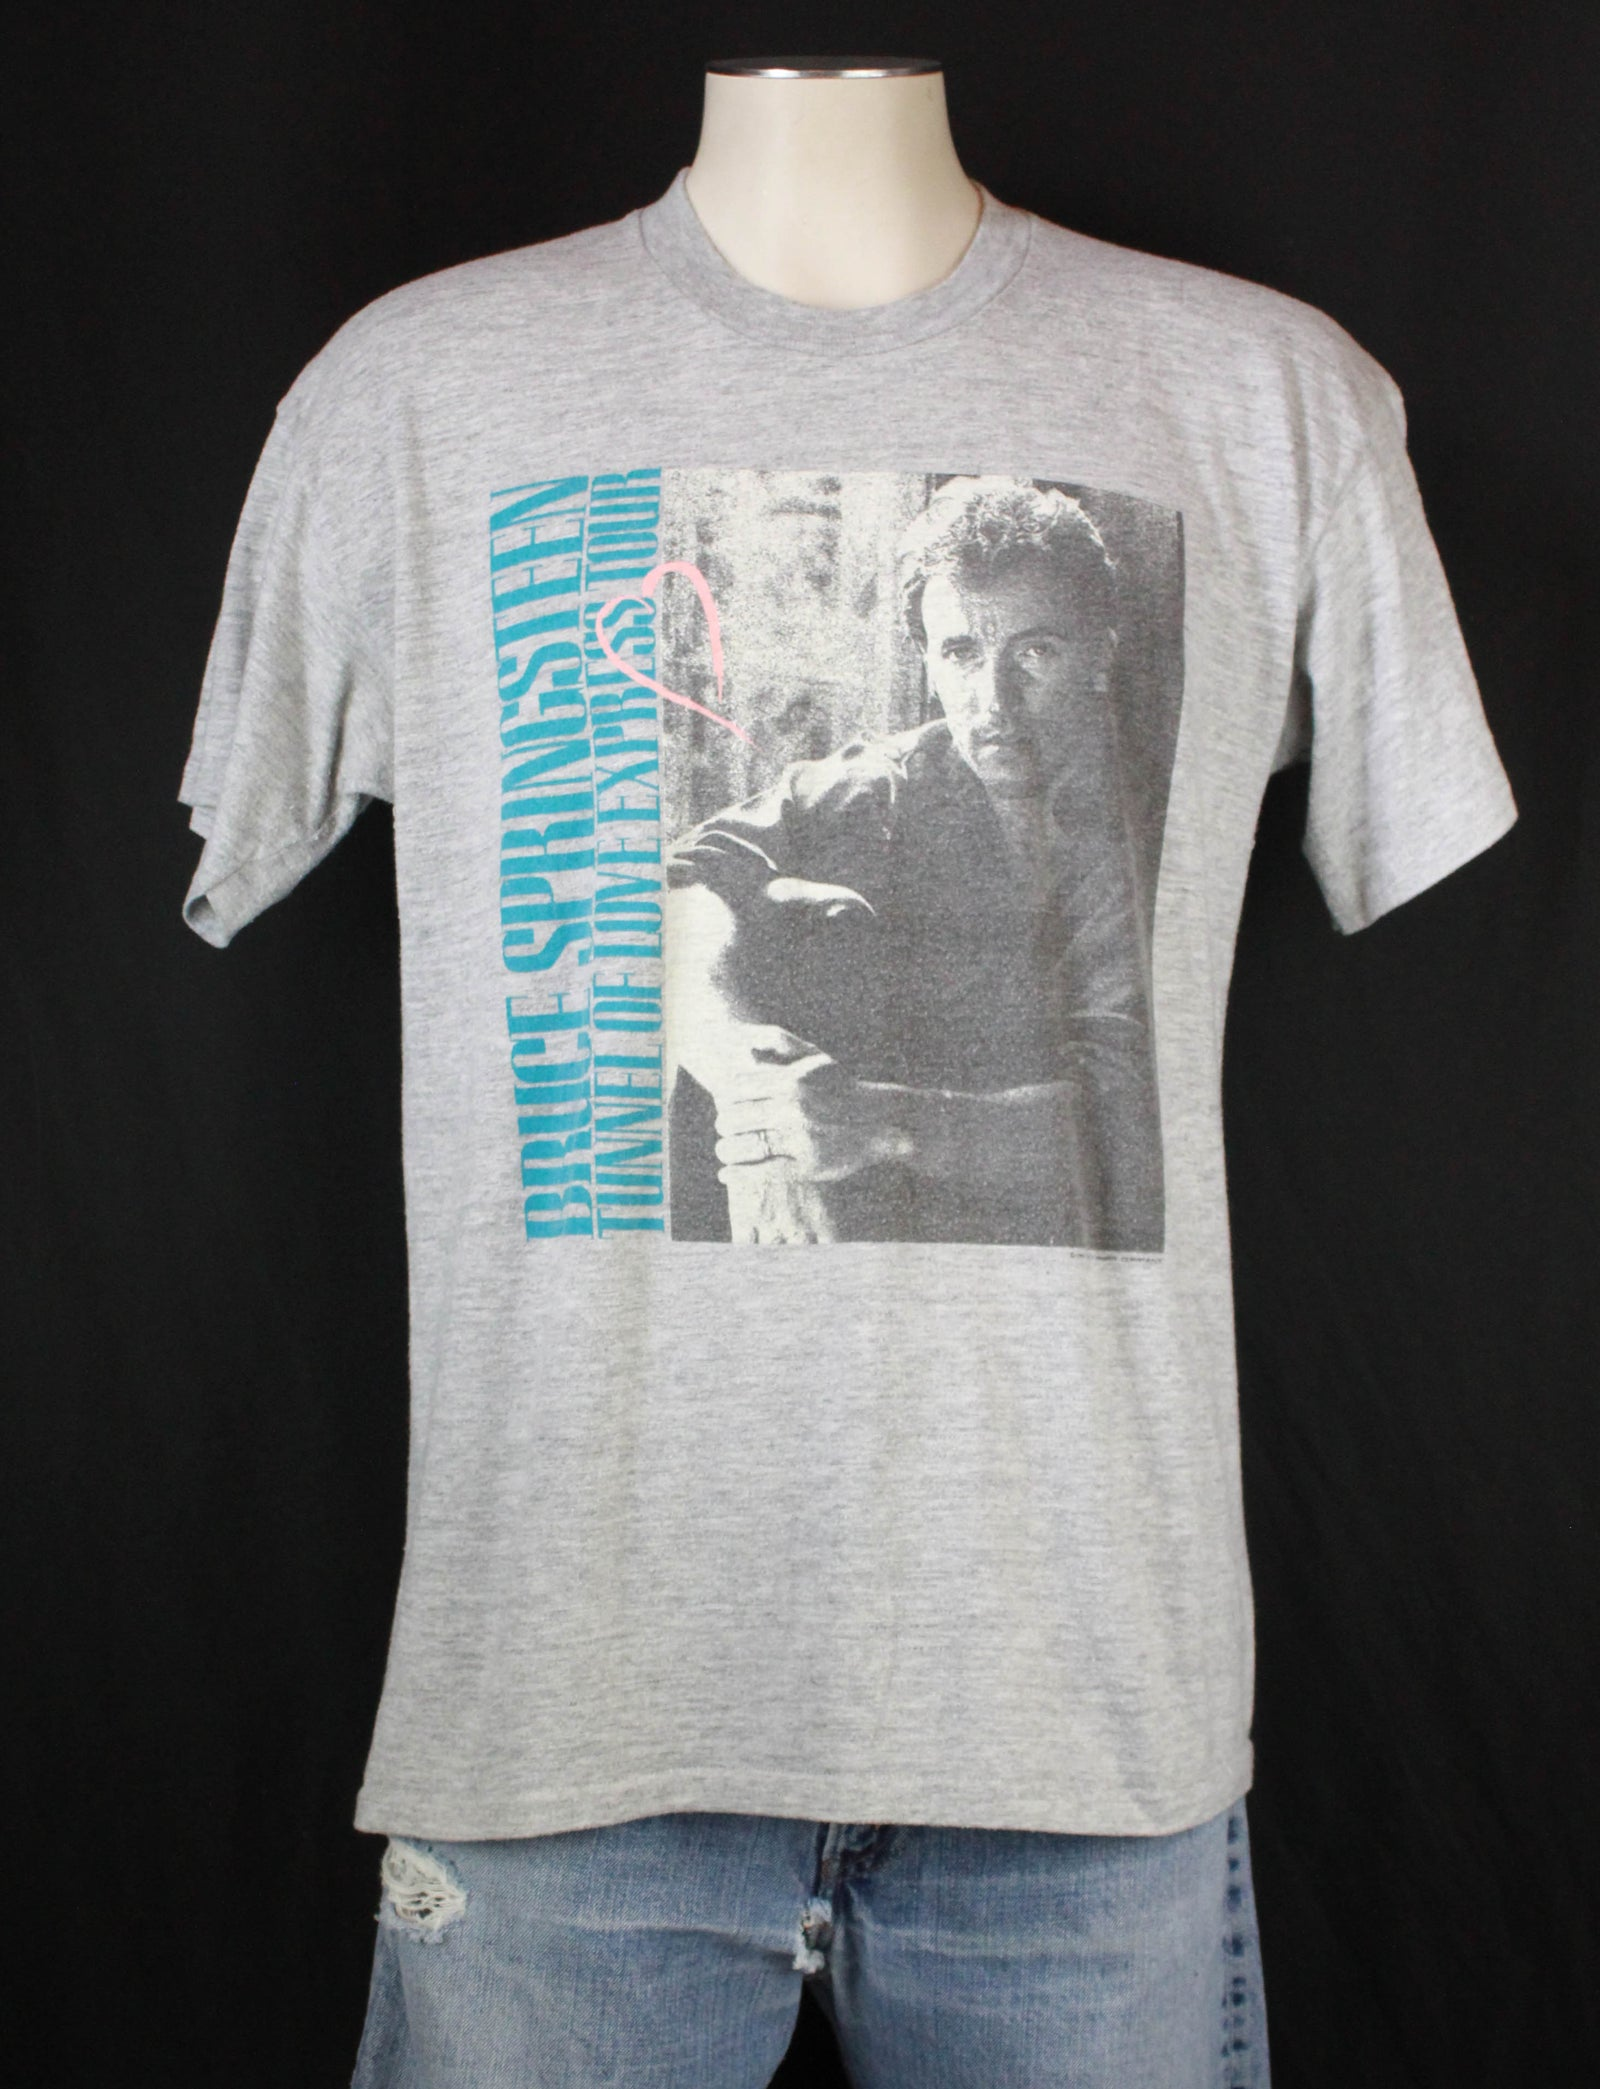 Vintage Bruce Springsteen Concert T Shirt 1988 Tunnel Of Love Express Tour - XL